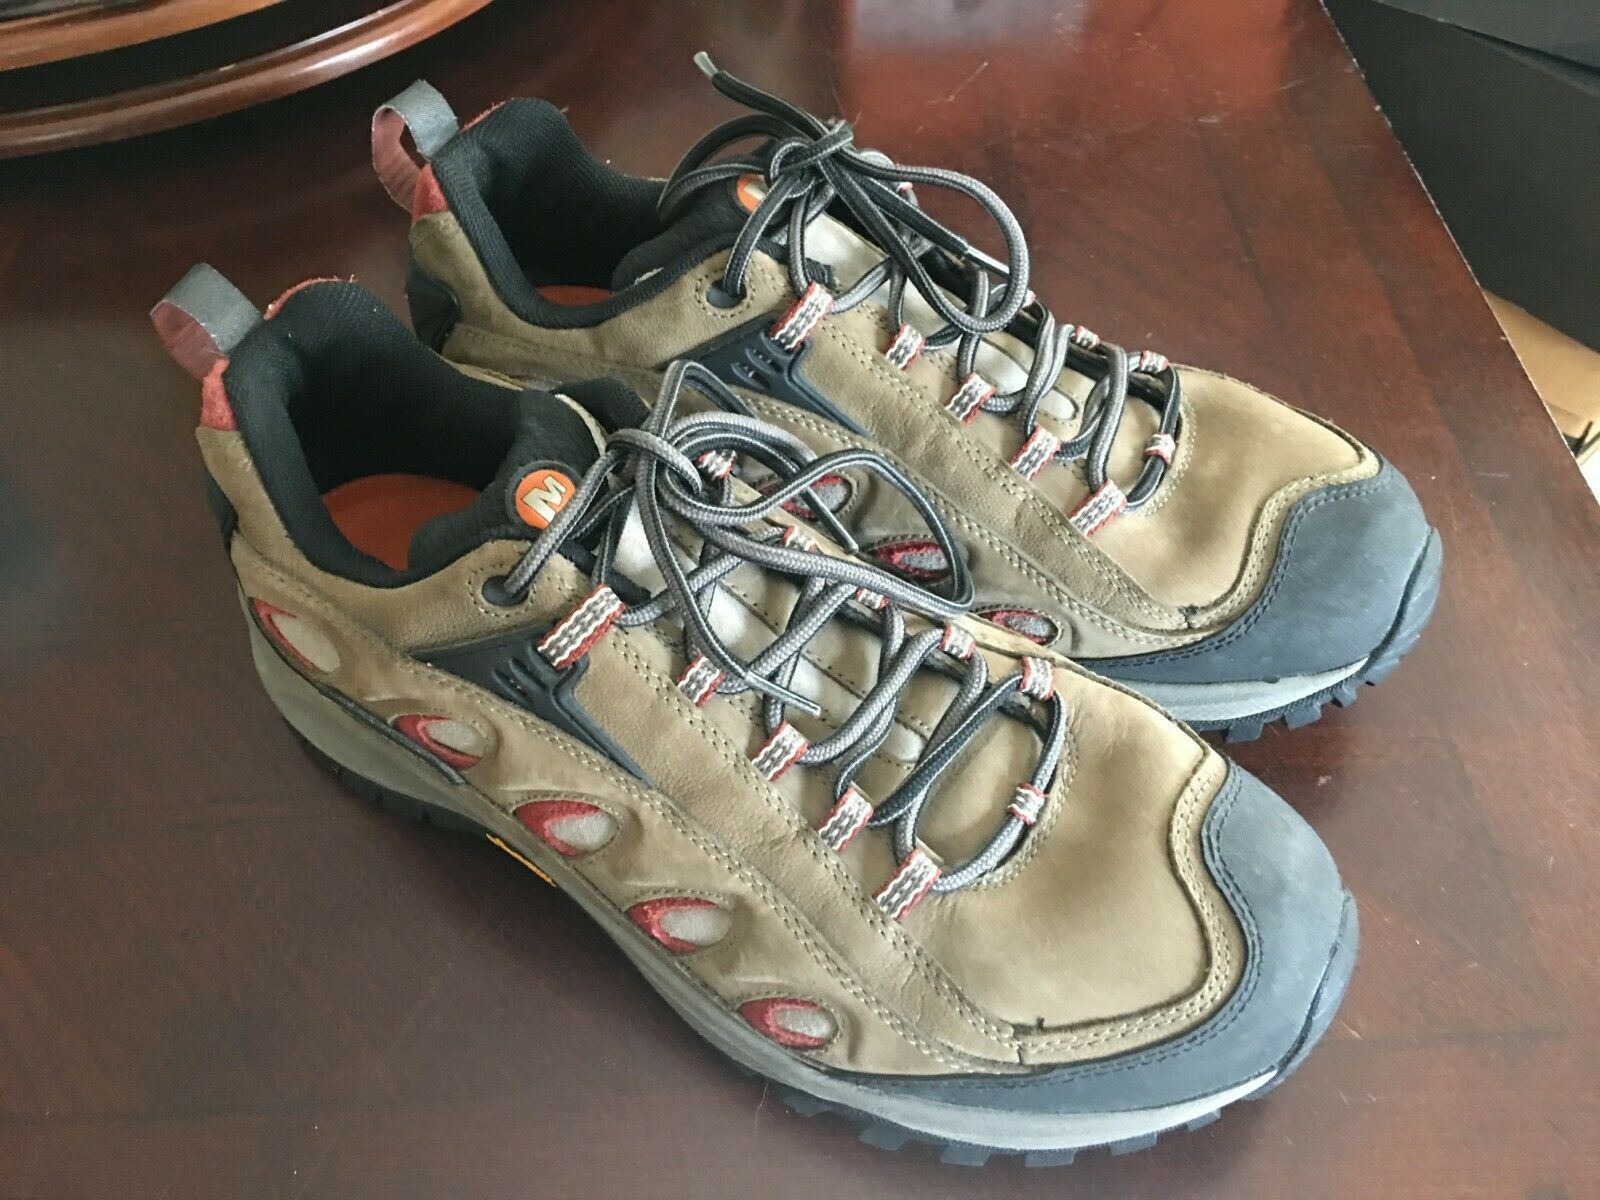 Men's Merrell Radius Hiking Trail shoes 11.5 US (46 EU) - EC